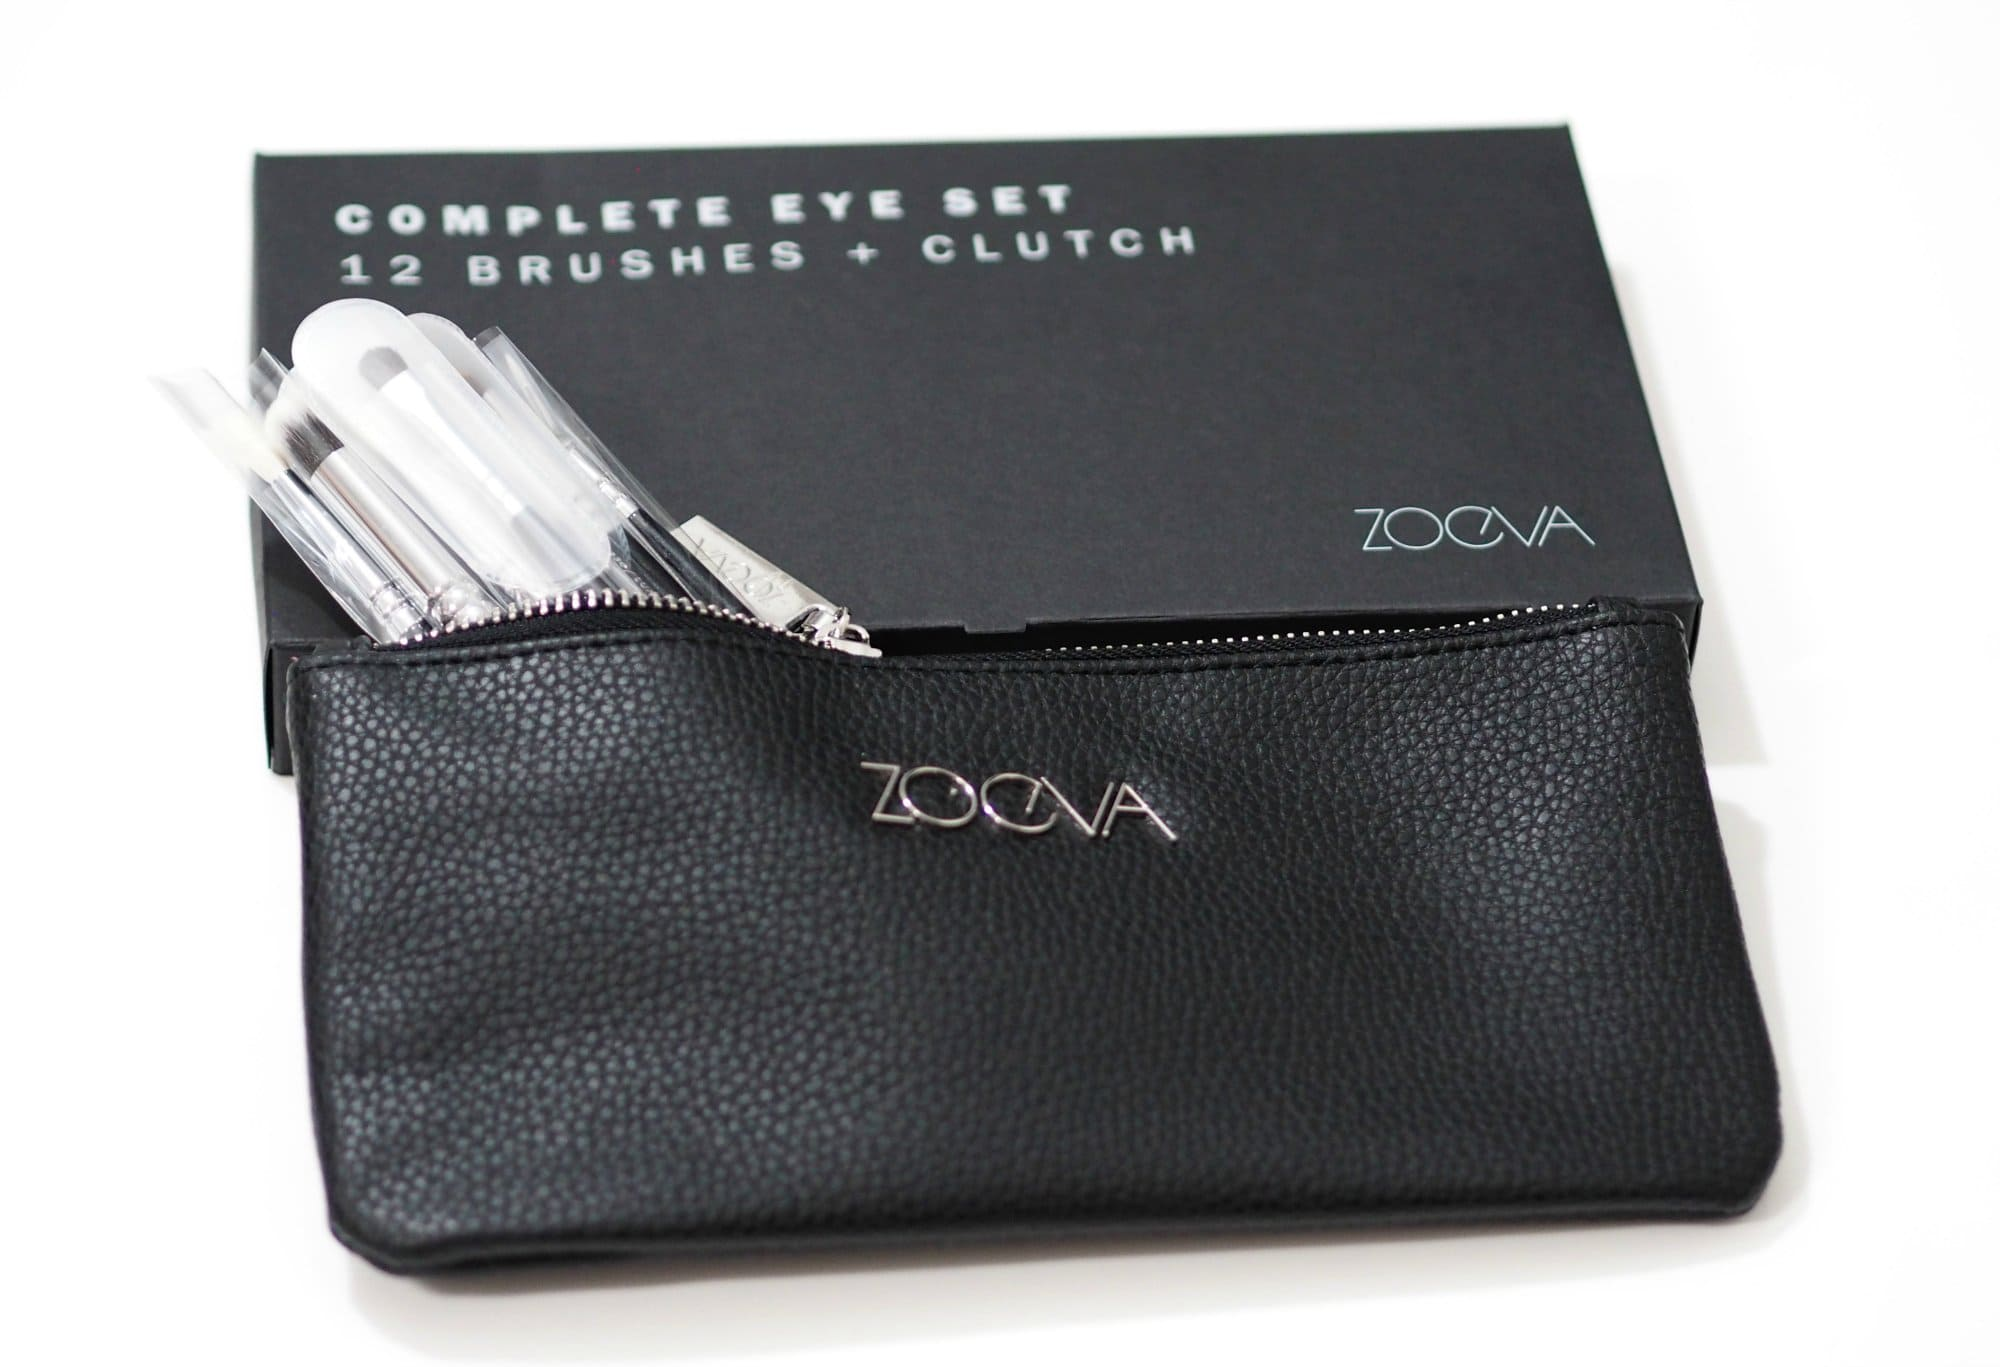 Zoeva Complete Eye Brush Set Review